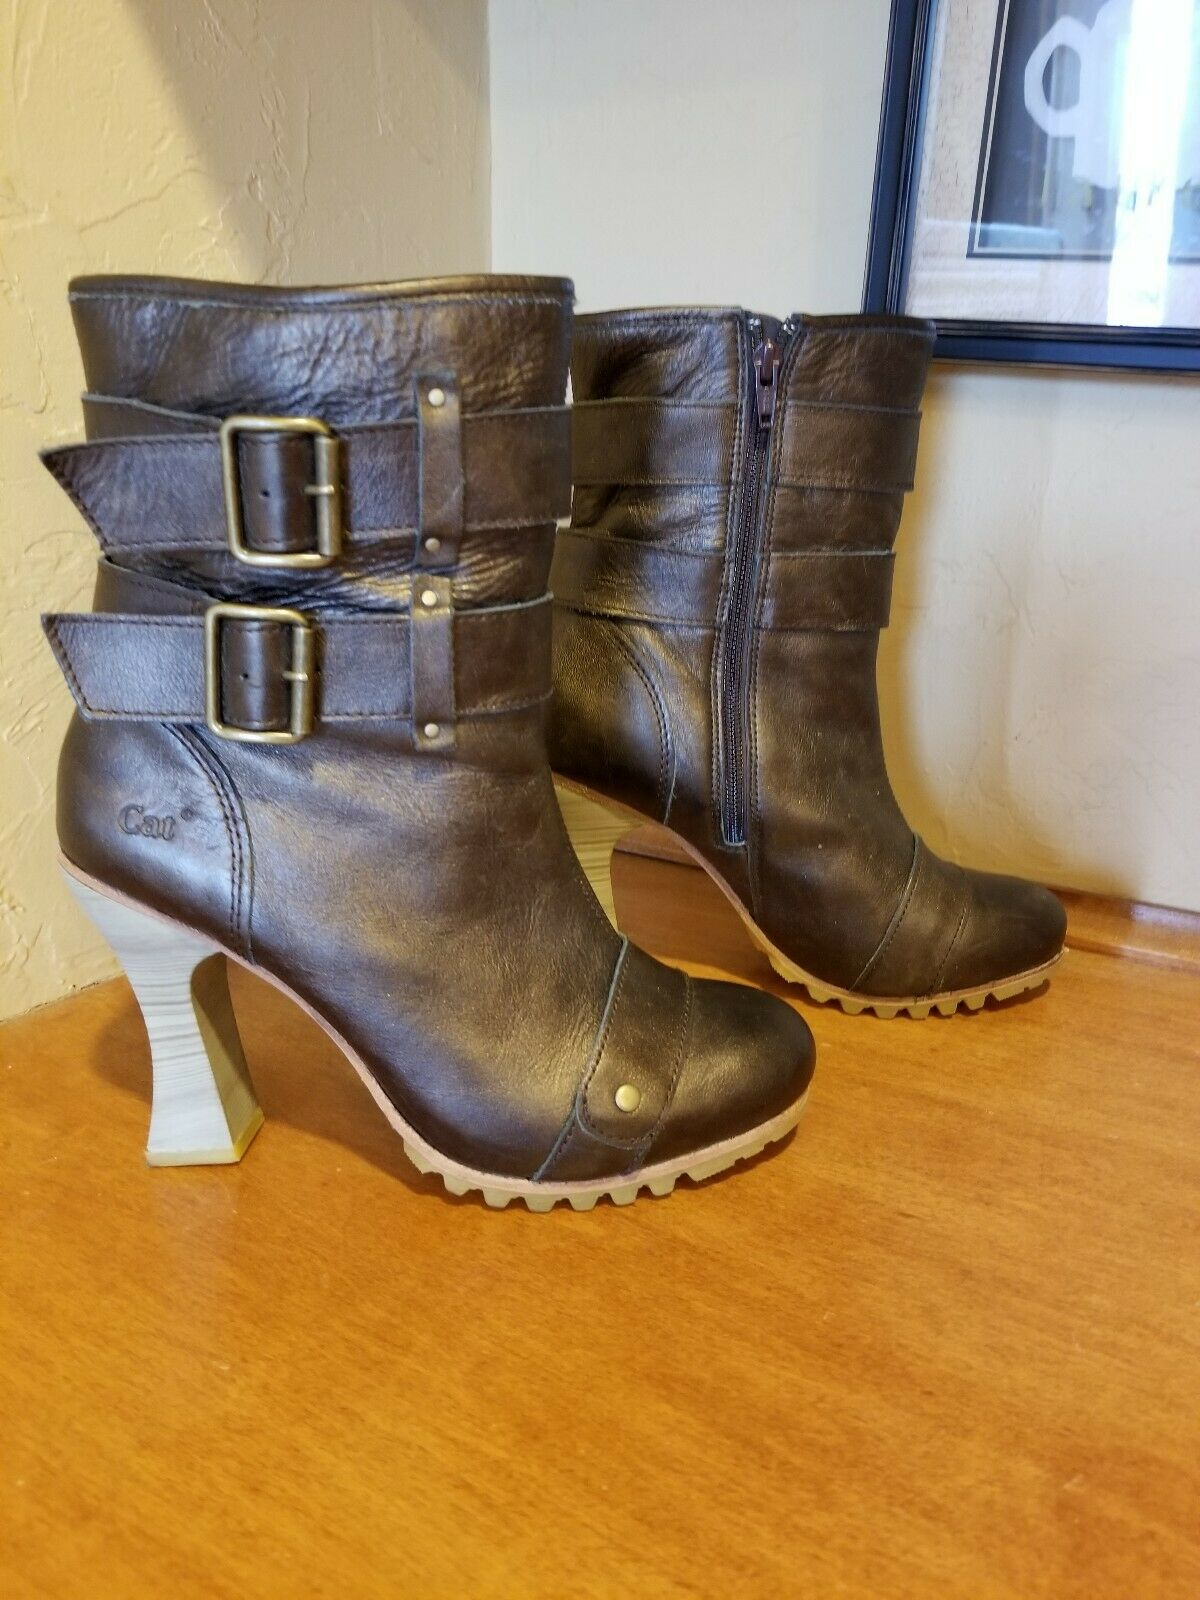 CAT Leather Metallic Boots Size 8